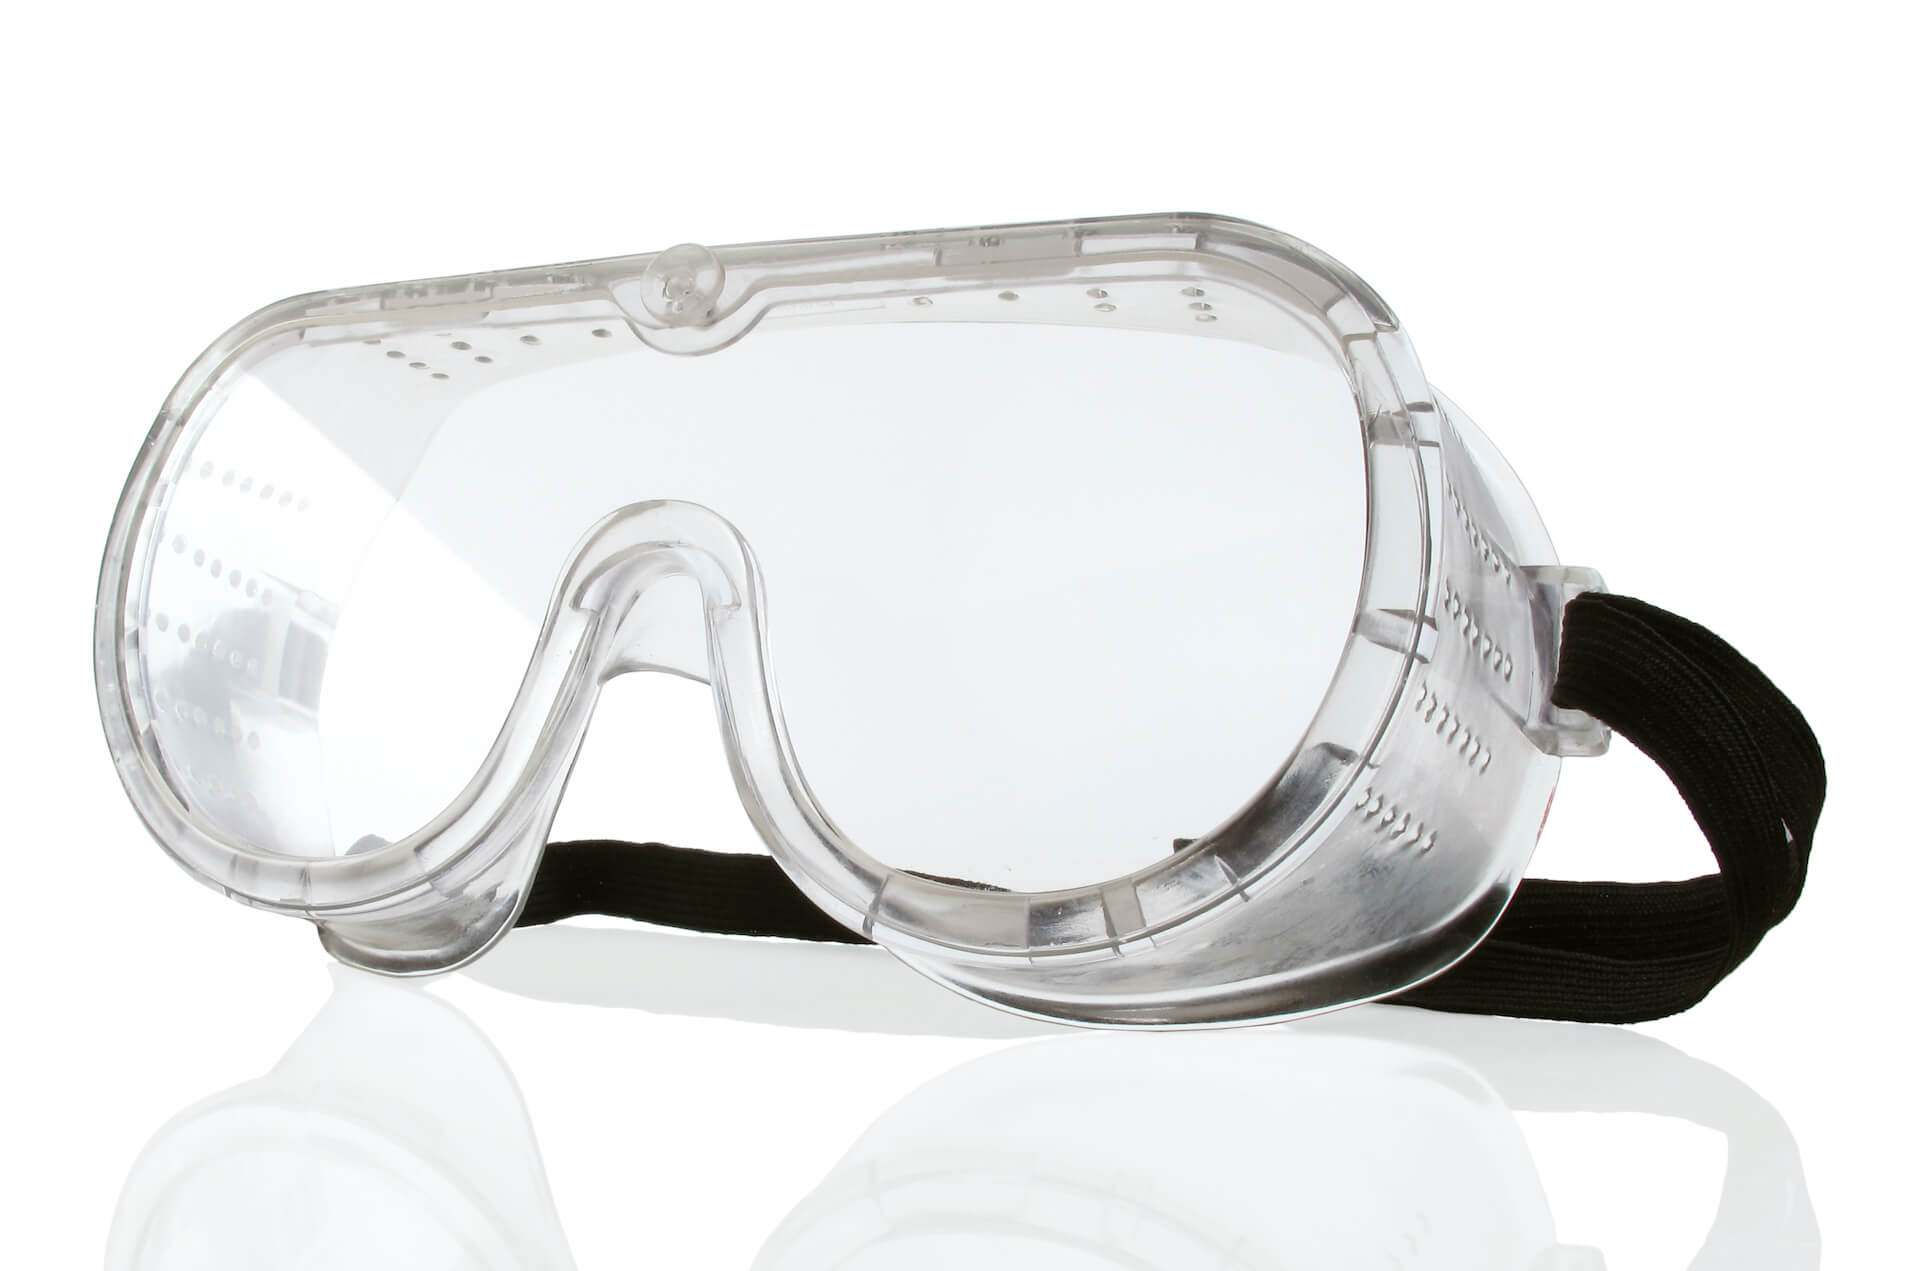 ship safety goggles from china